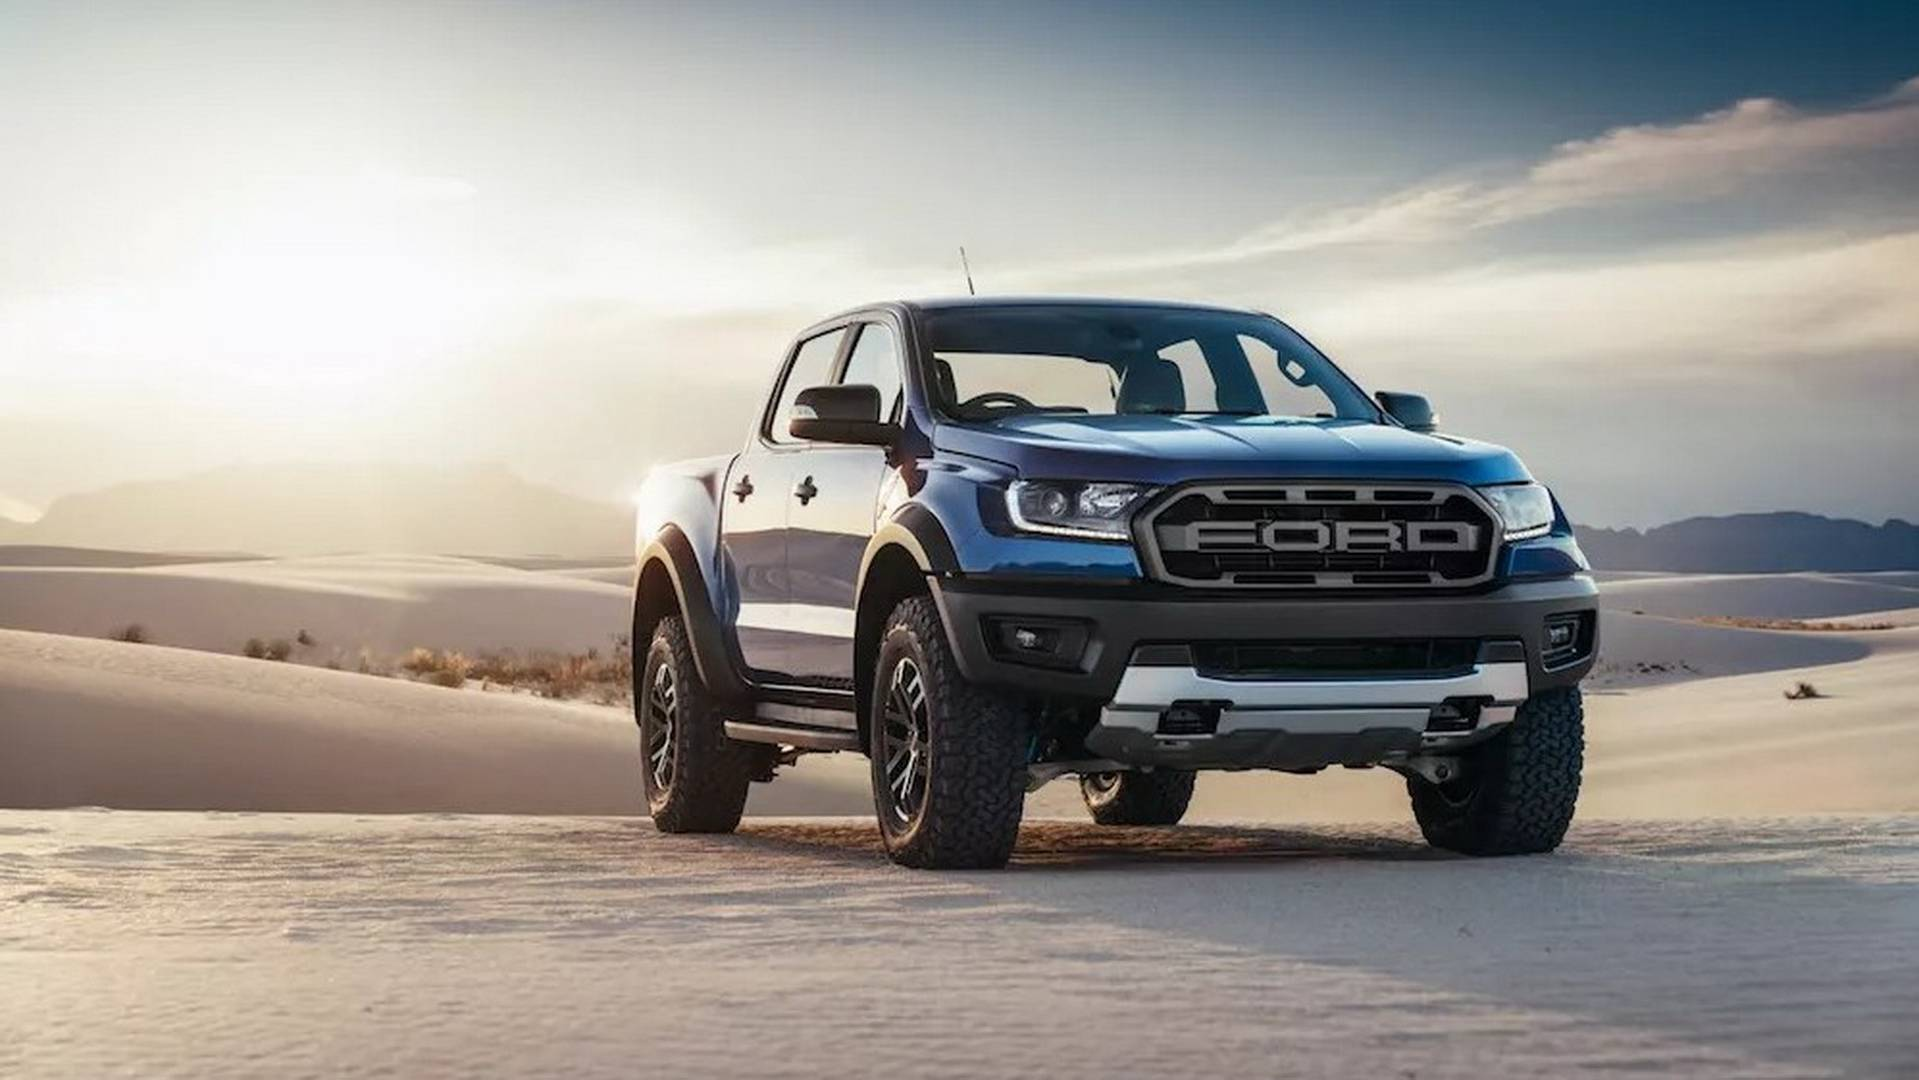 New Ford Ranger Raptor Coming to The UK in Early 2019 - autoevolution